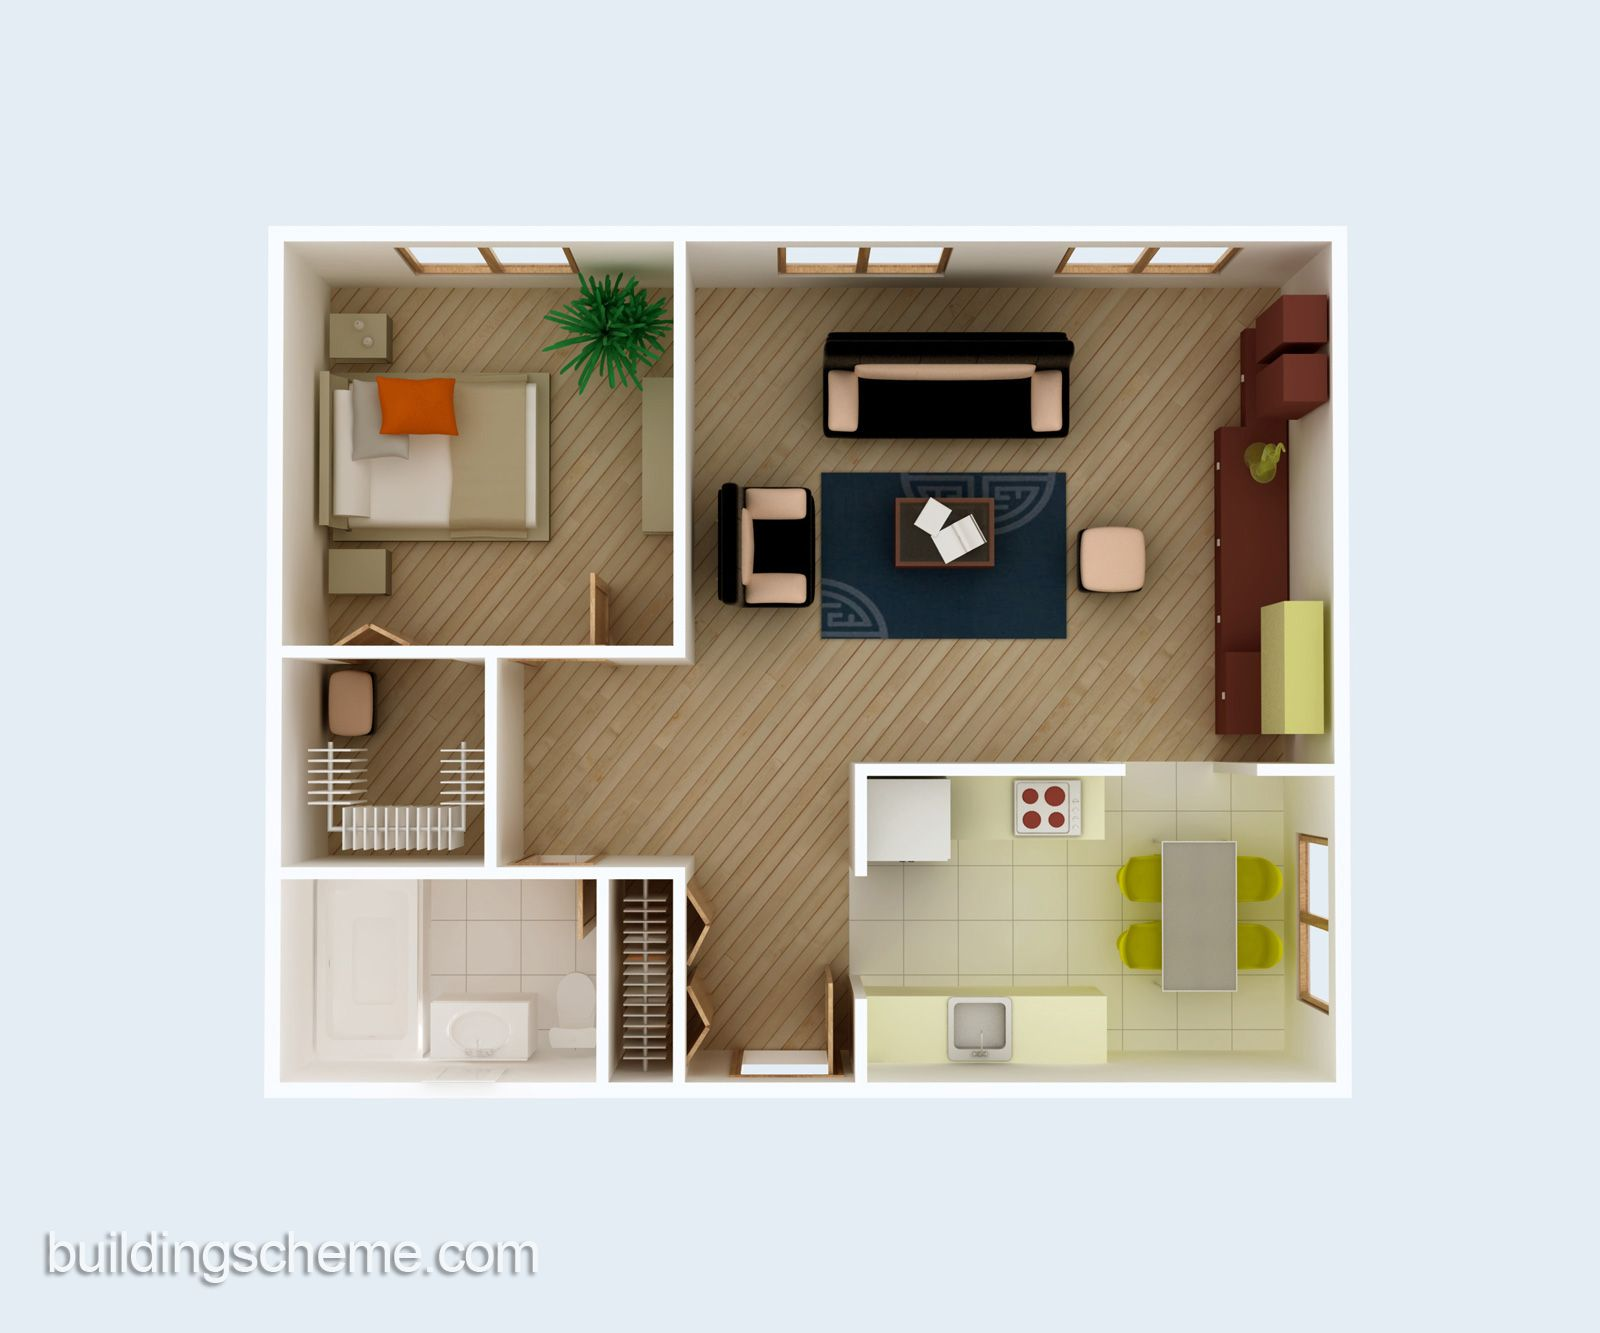 3d Room Layout Good 3d Building Scheme And Floor Plans Ideas For House